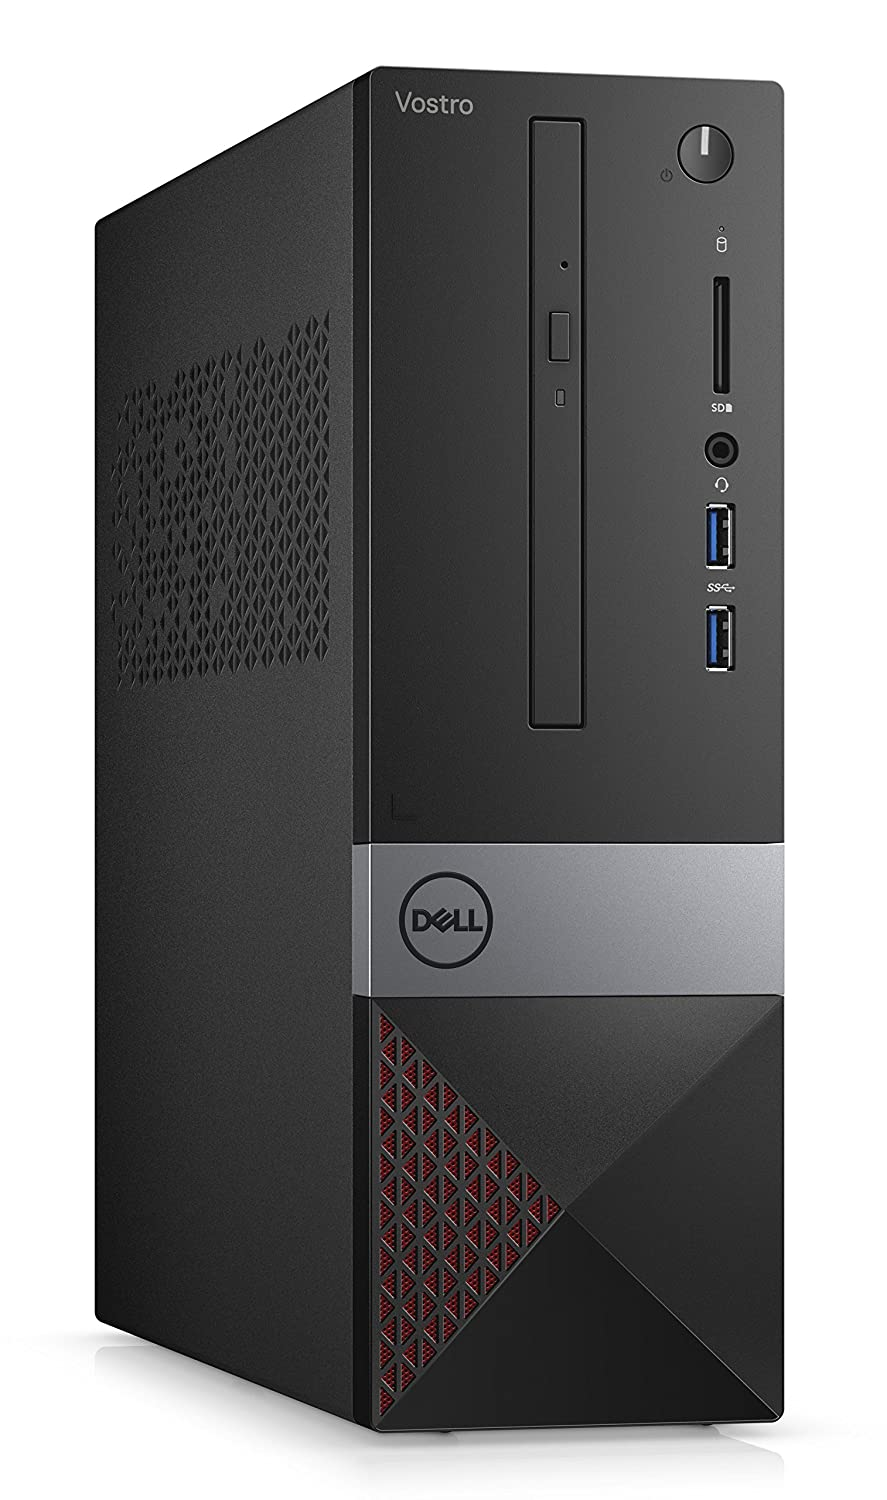 Astonishing Dell Vostro 3470 2018 Sff Desktop Core I3 8Th Gen 4 Gb Ddr4 1 Tb Windows 10 Home Y3Xyv Interior Design Ideas Oteneahmetsinanyavuzinfo